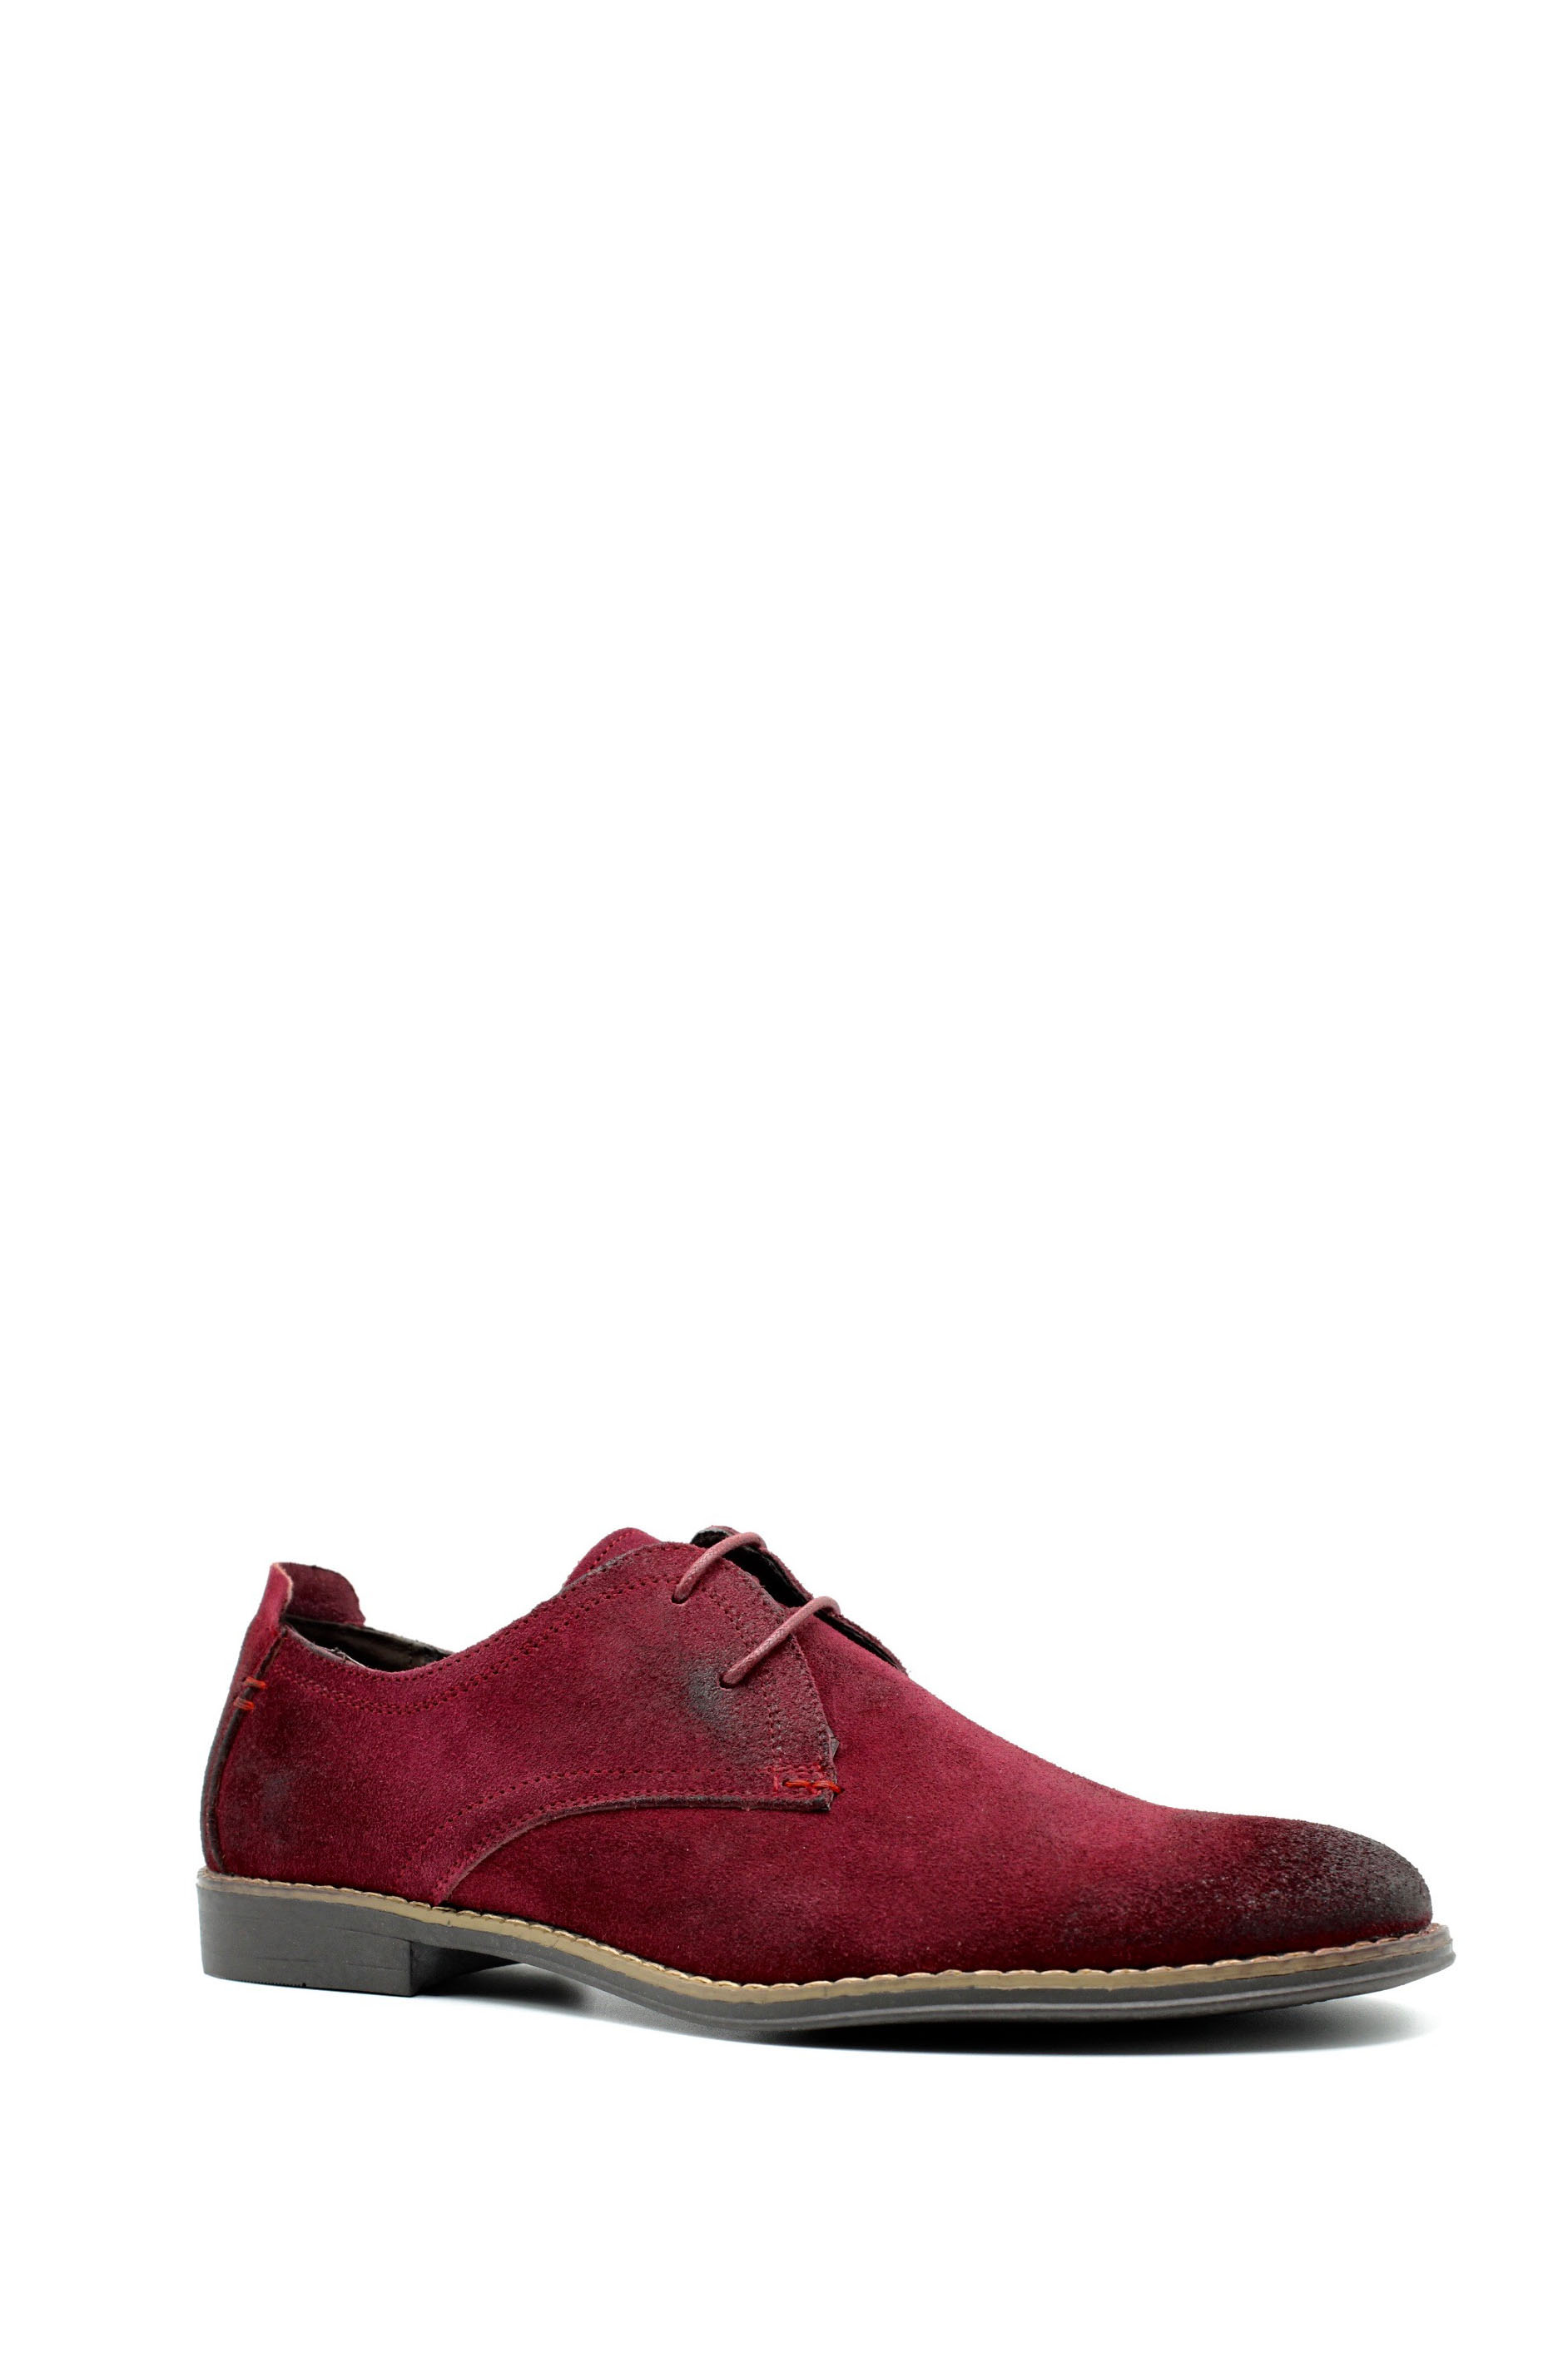 Chaussures de ville Chaussures Rouge ELONG SHOES K20 #c eFashion Paris